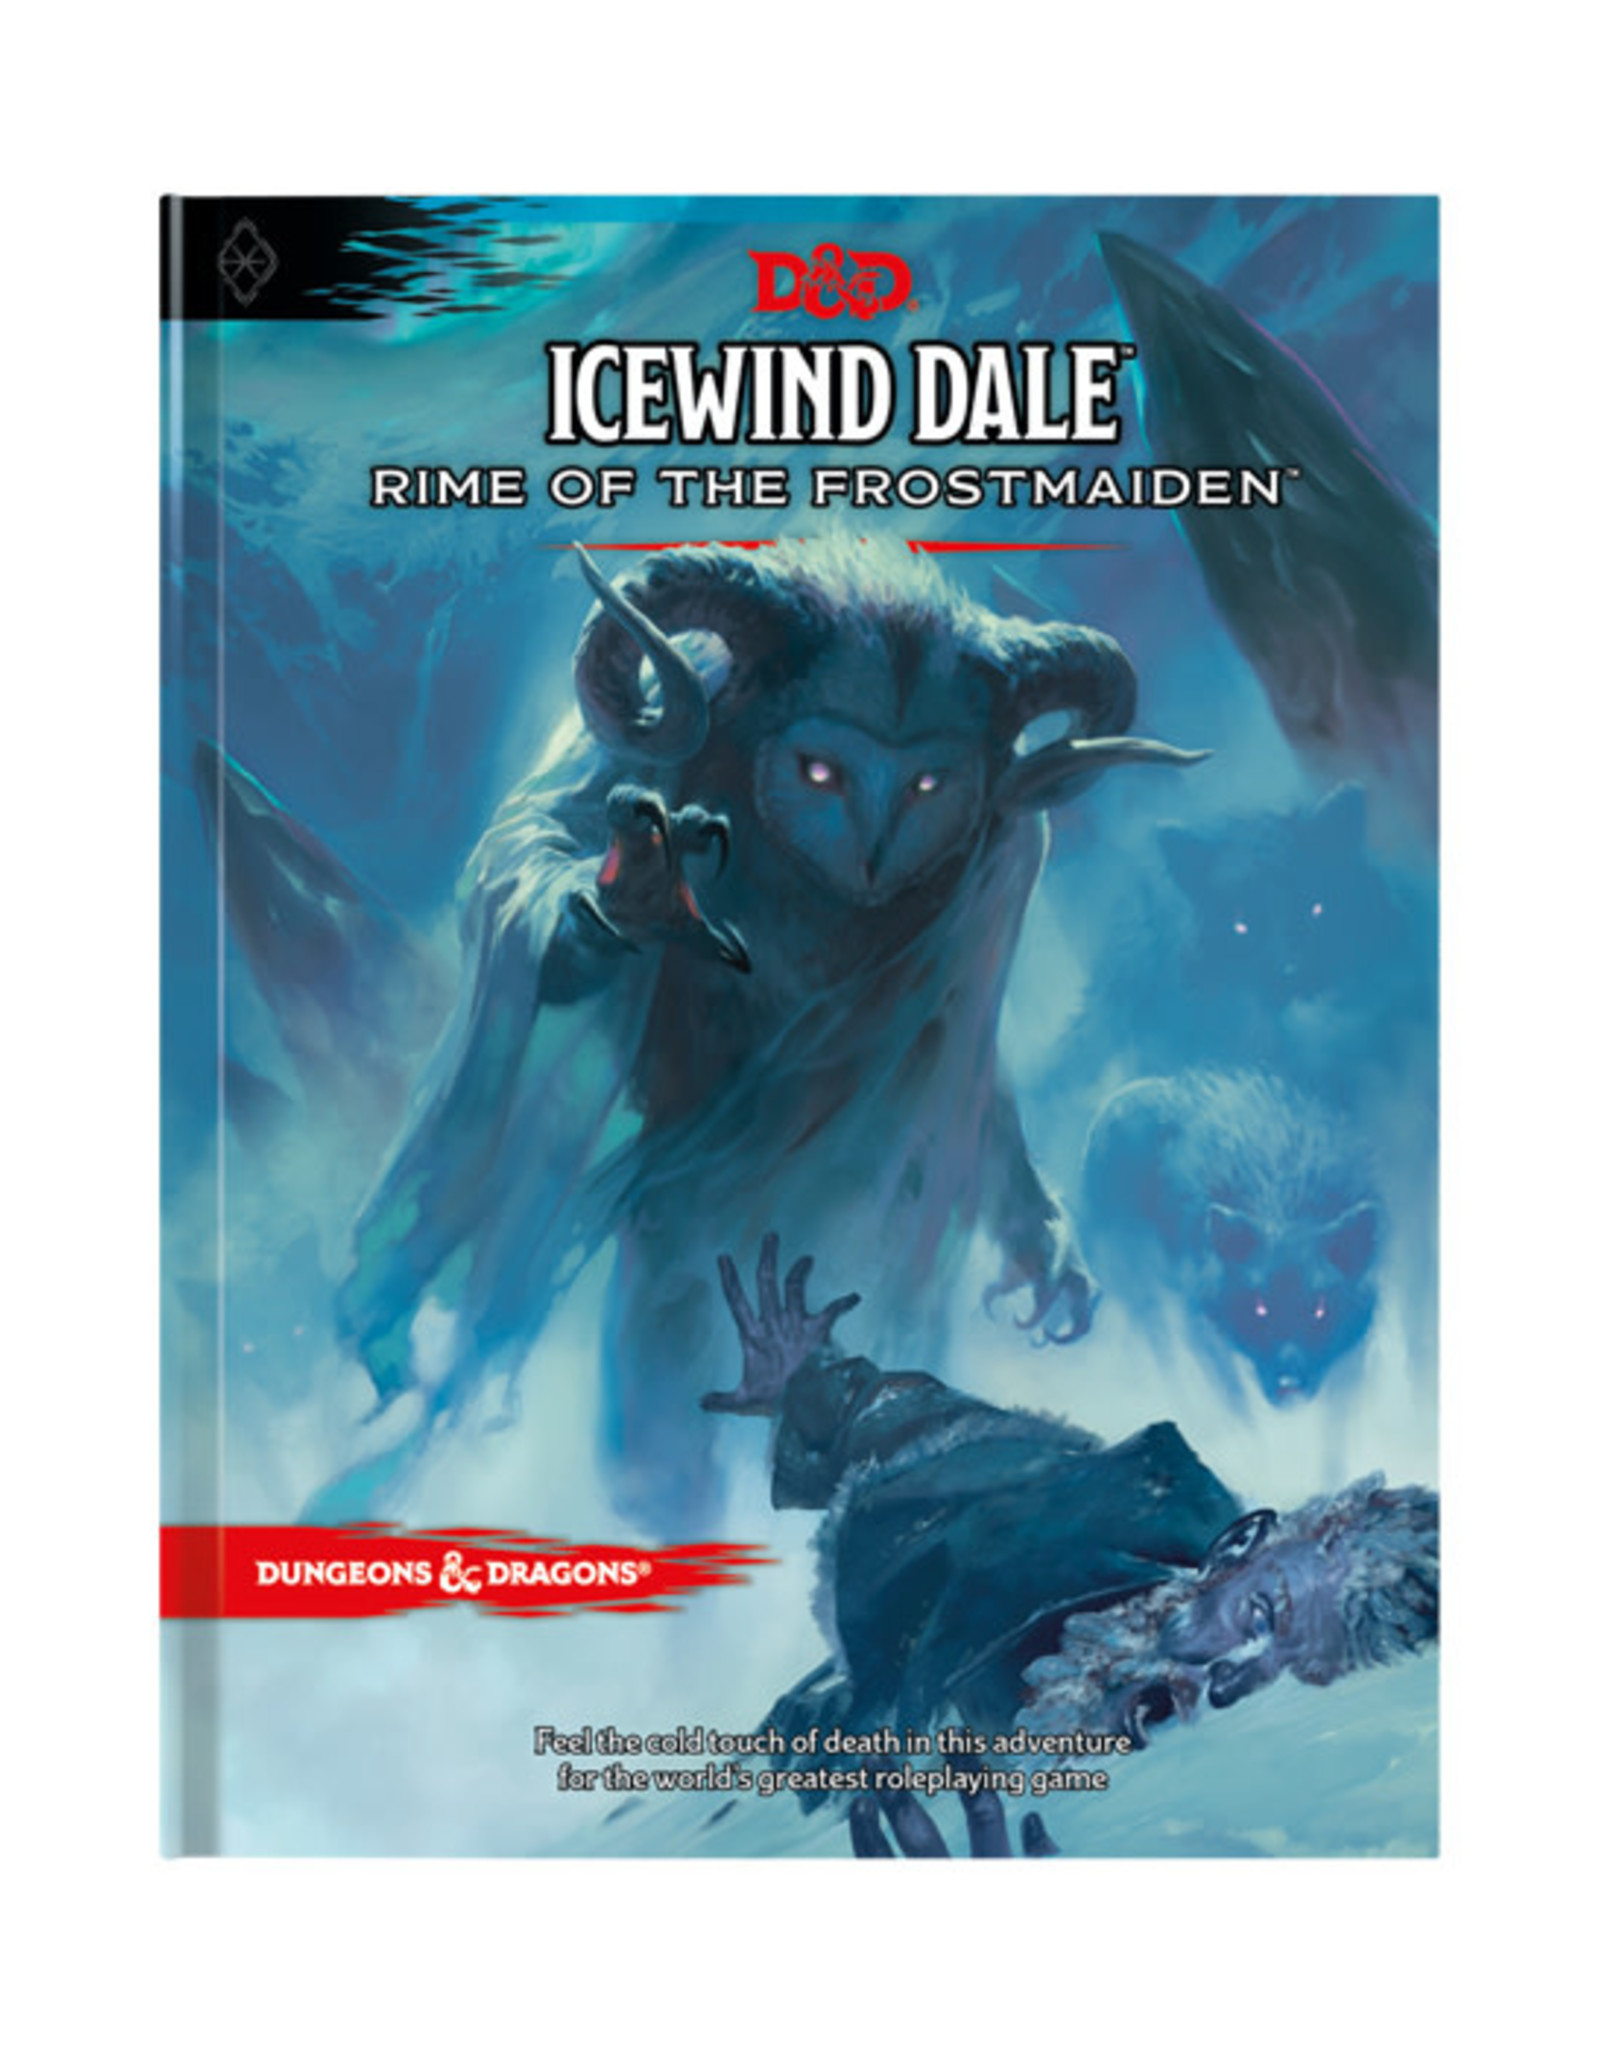 Dungeons & Dragons Dungeons & Dragons: 5th Edition - Rime of the Frostmaiden